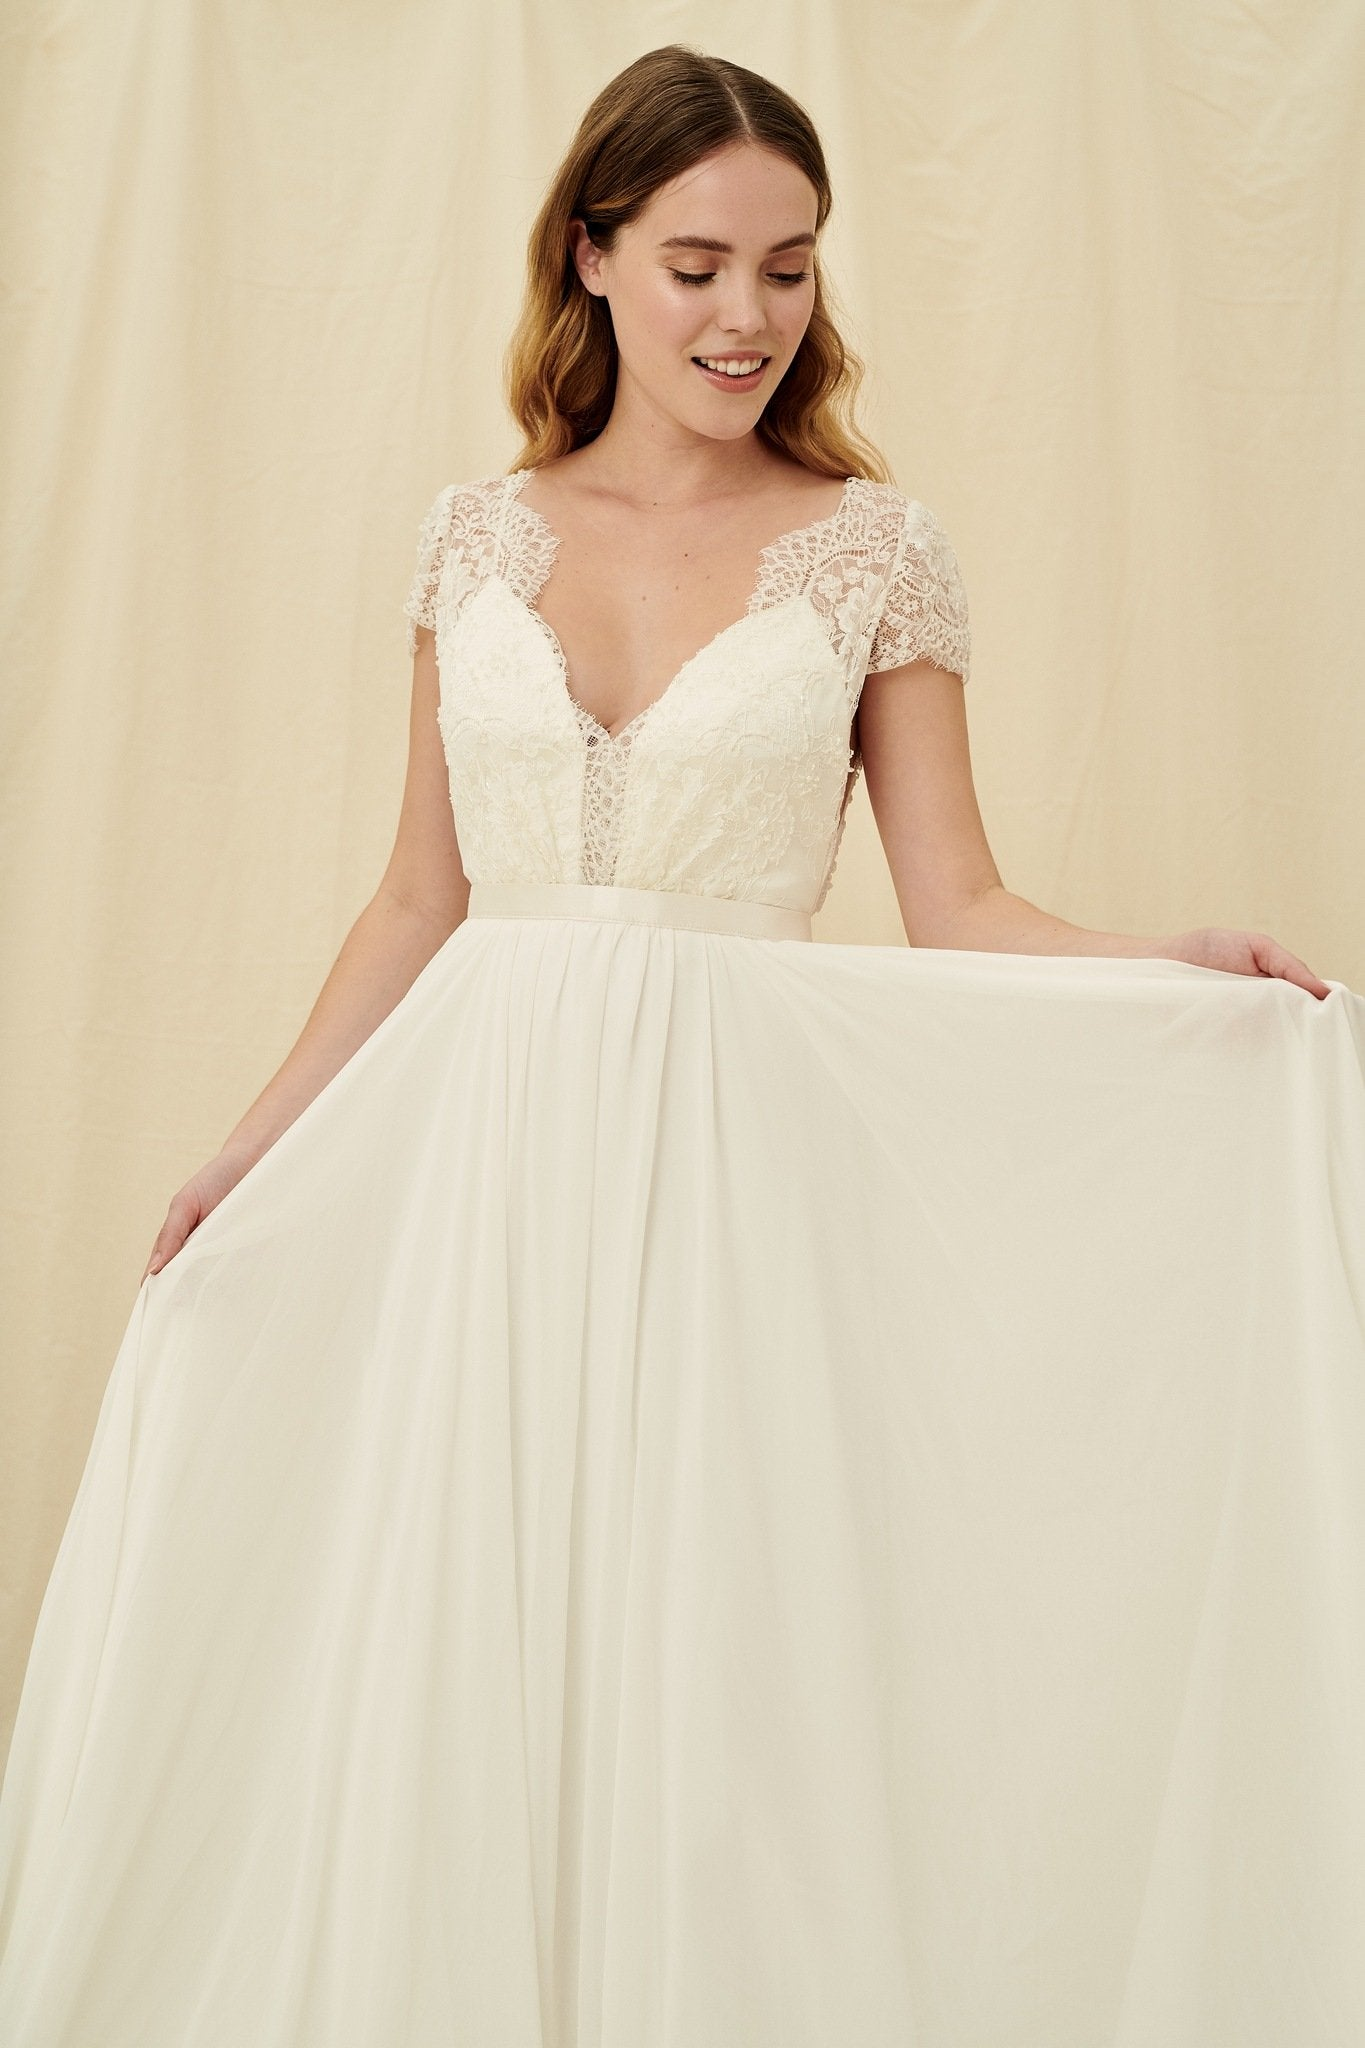 Low back wedding gown with beaded lace cap sleeves and a flowy chiffon skirt